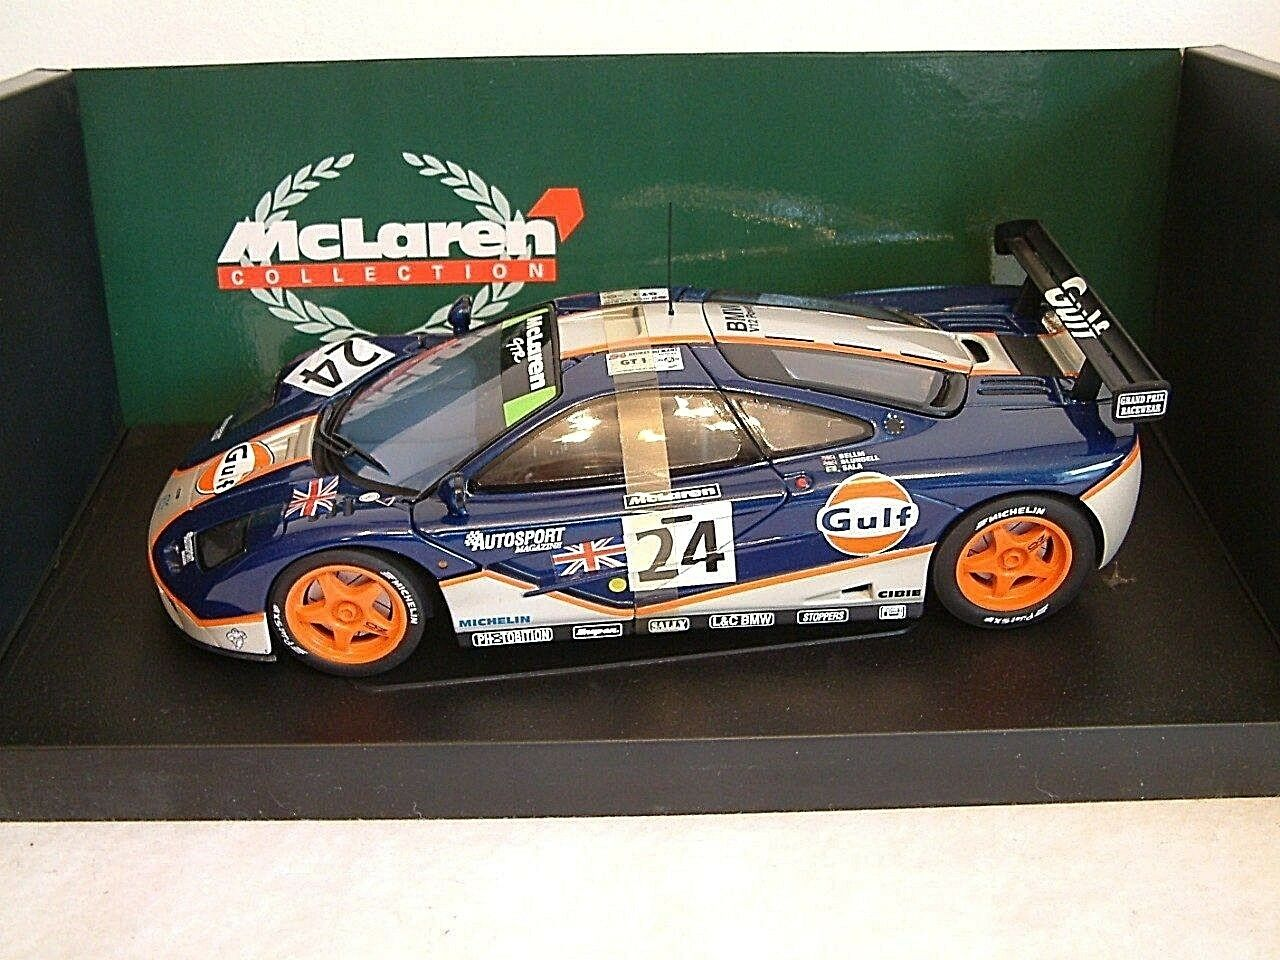 MINICHAMPS 530151824 - 1 18 MCLAREN F1 GTR - GULF RACING - 4TH LEMANS 1995